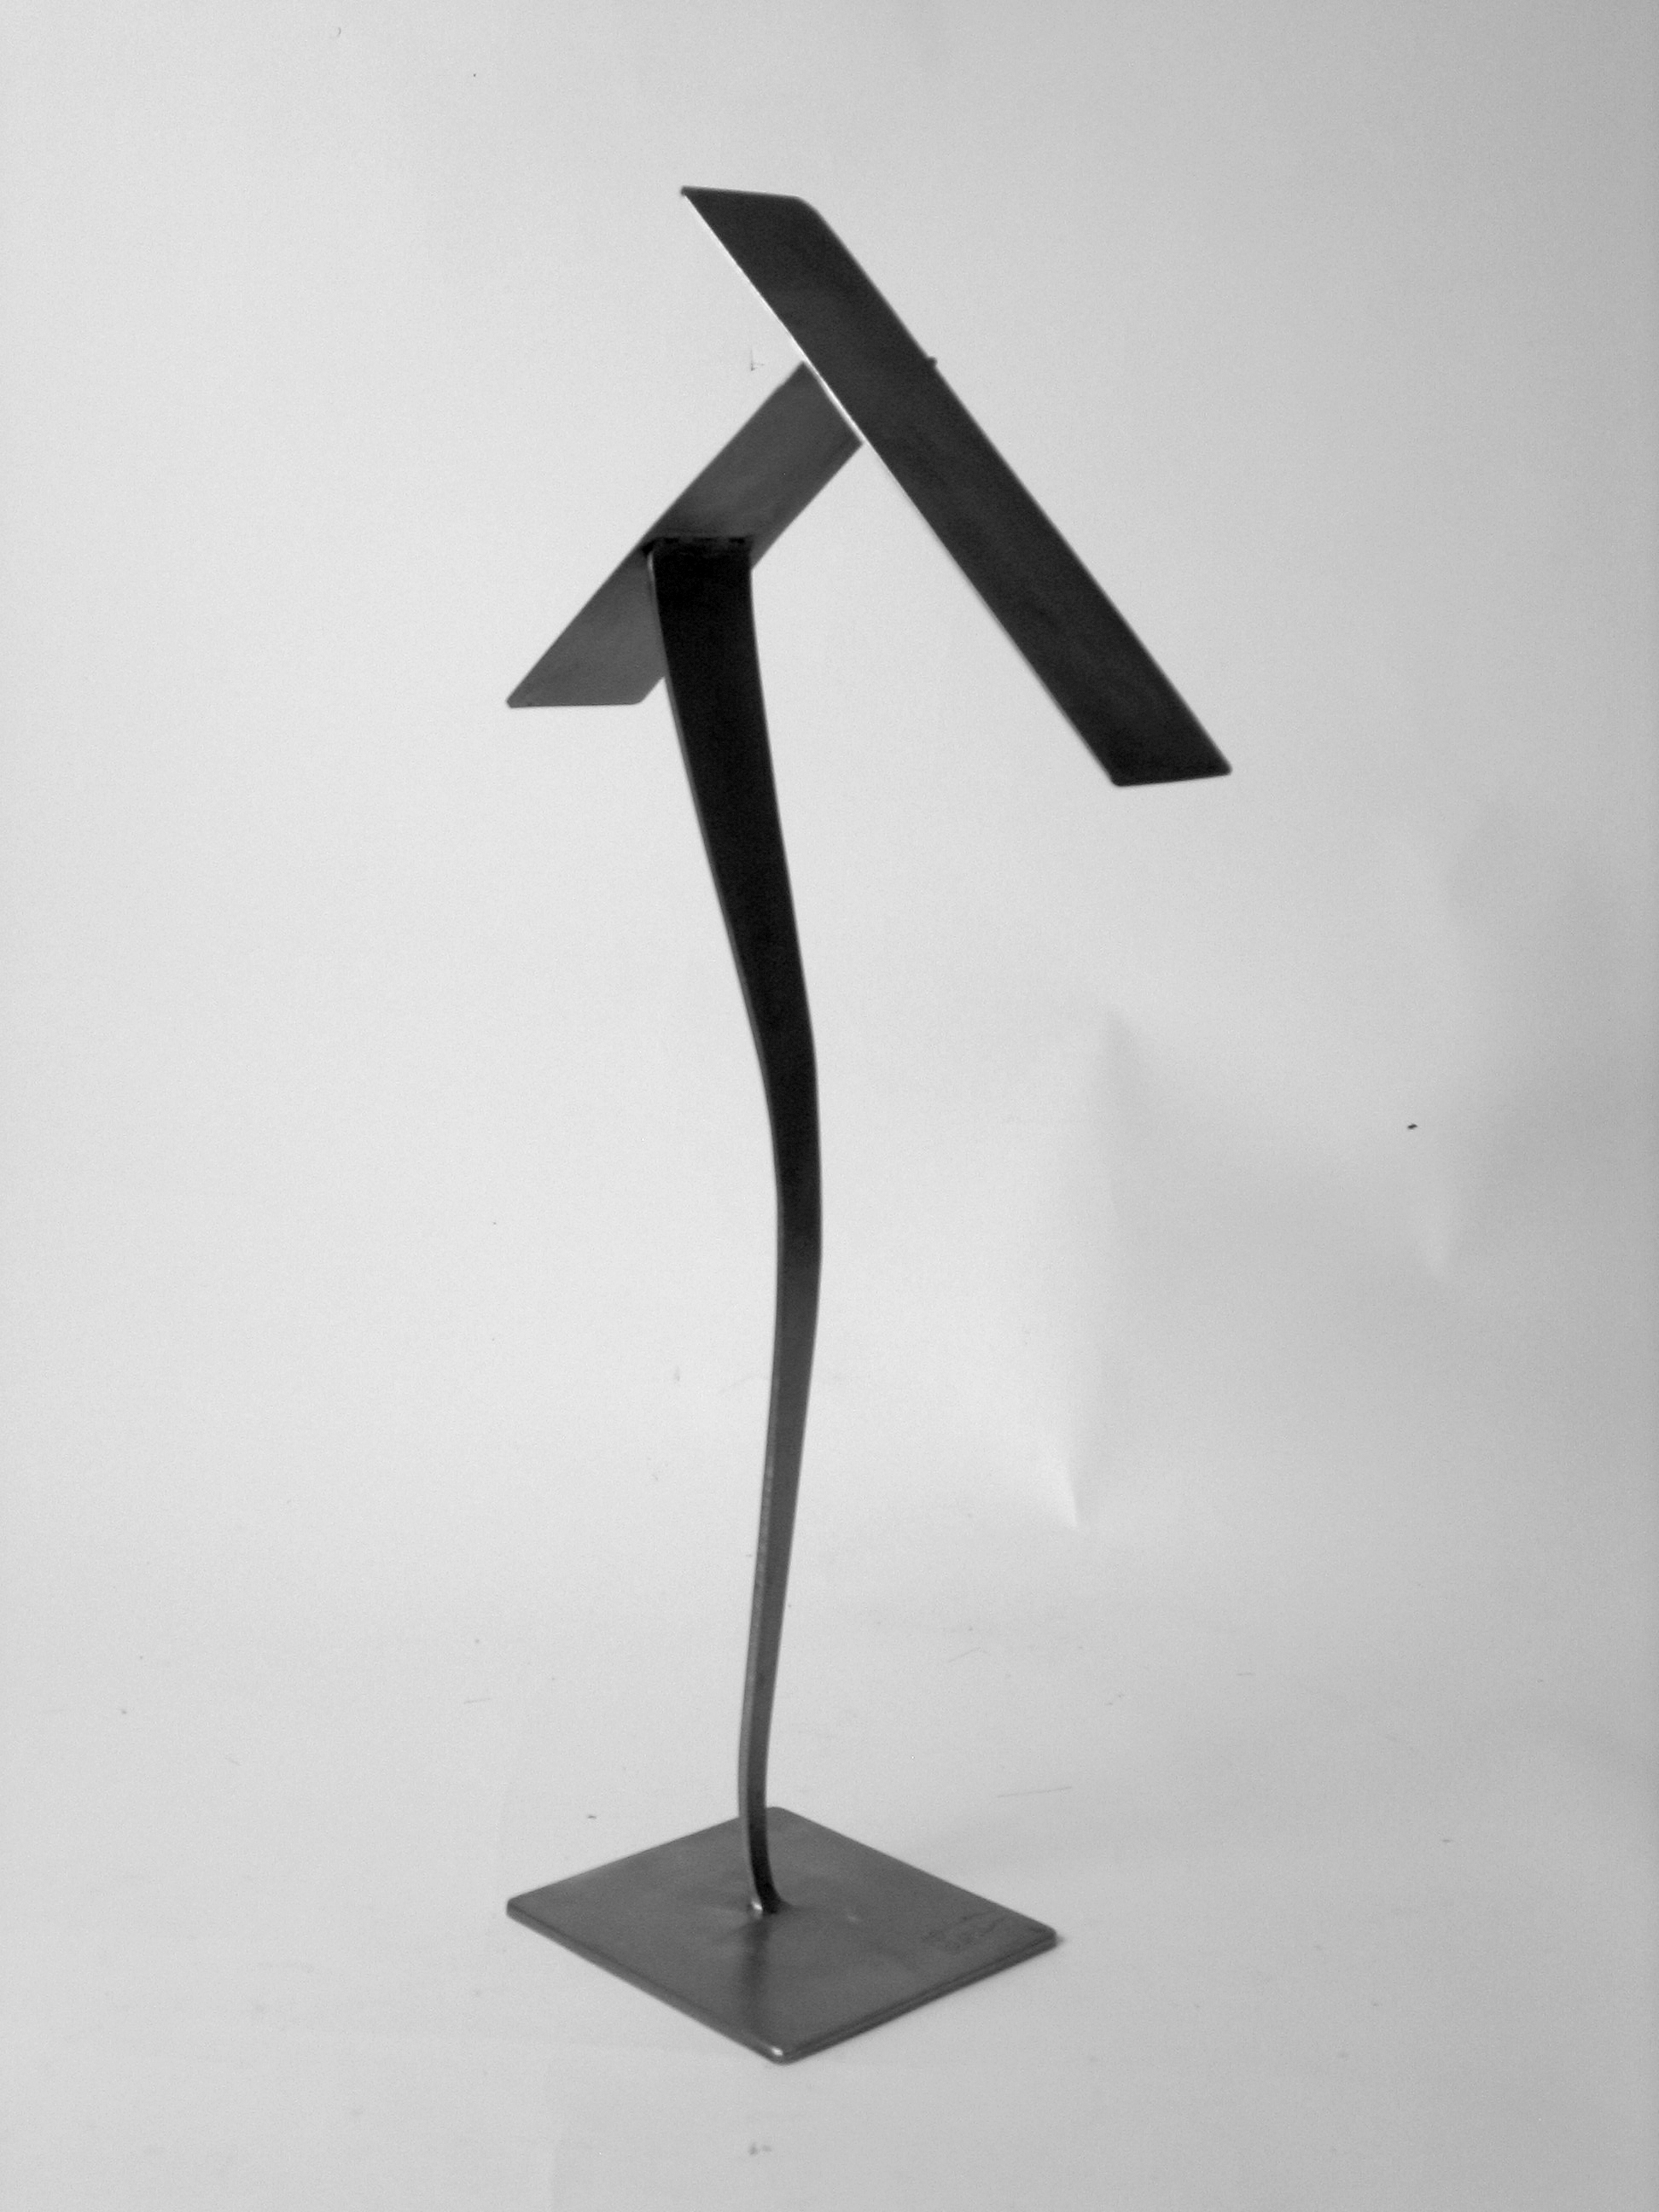 Come Fly with Me, 2010, blackened, welded steel, 18 x 9 x 4 in, SOLD